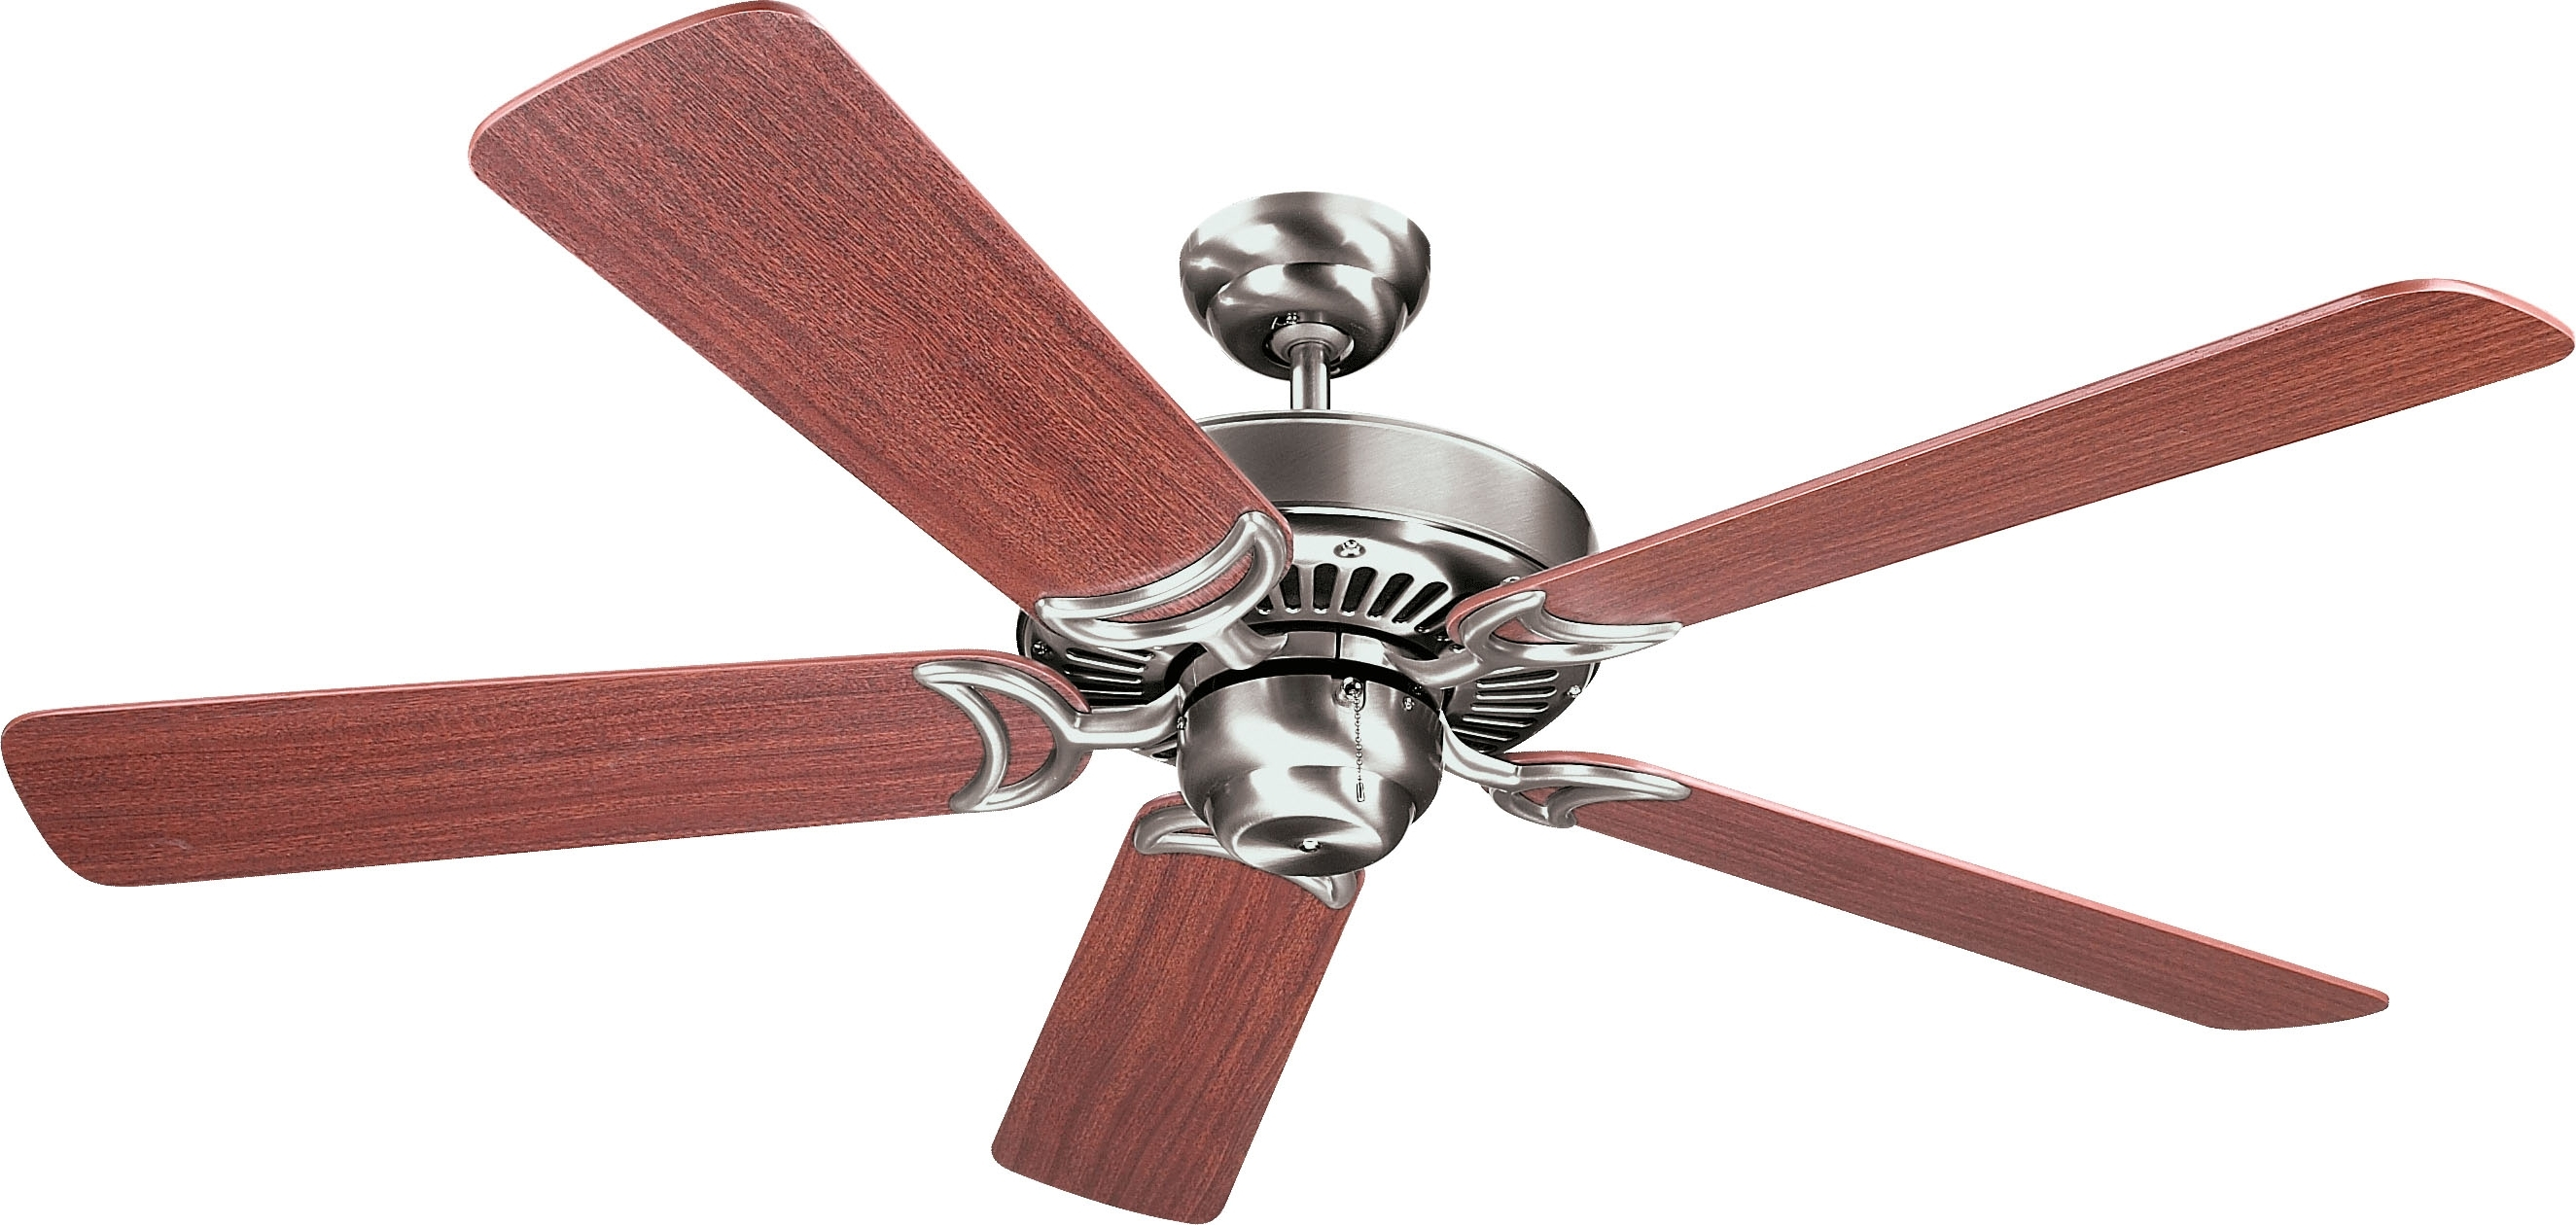 Recent Vertical Outdoor Ceiling Fans Within Ceiling: Interesting Vertical Ceiling Fans Ceiling Fan Vertical (View 6 of 20)